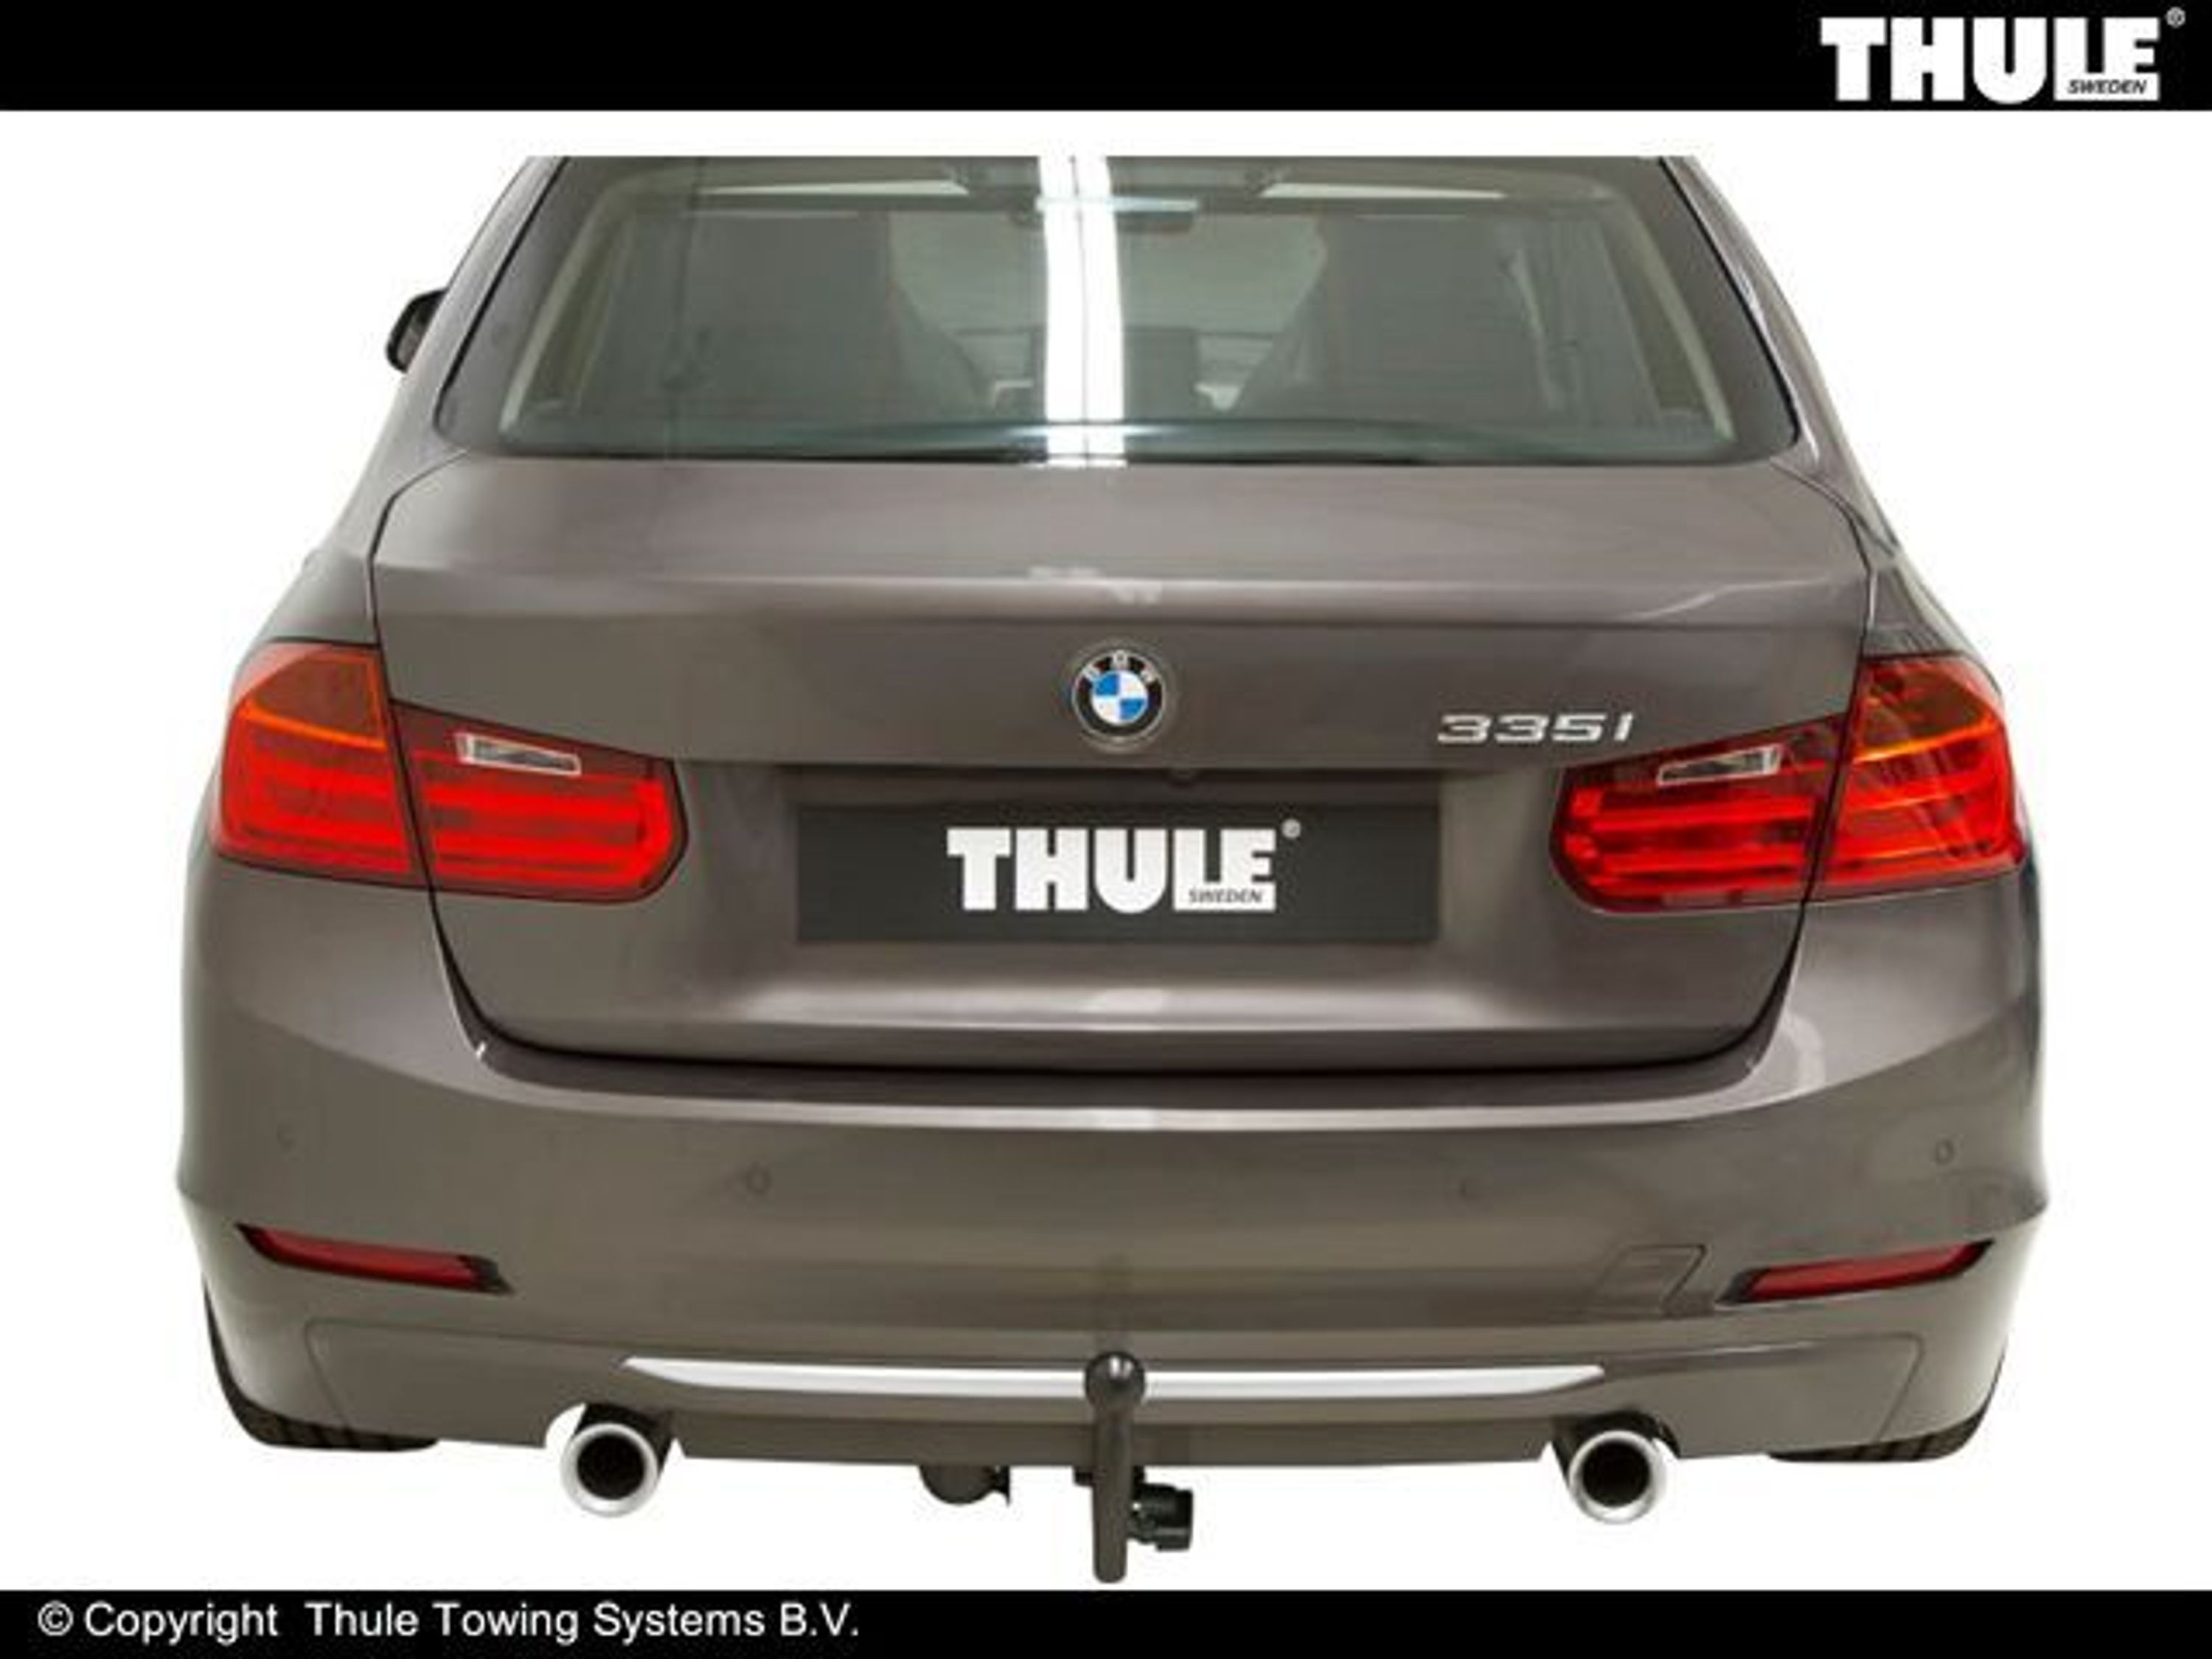 thule abnehmbare anh ngerkupplung bma 7 pol e satz bmw 3. Black Bedroom Furniture Sets. Home Design Ideas